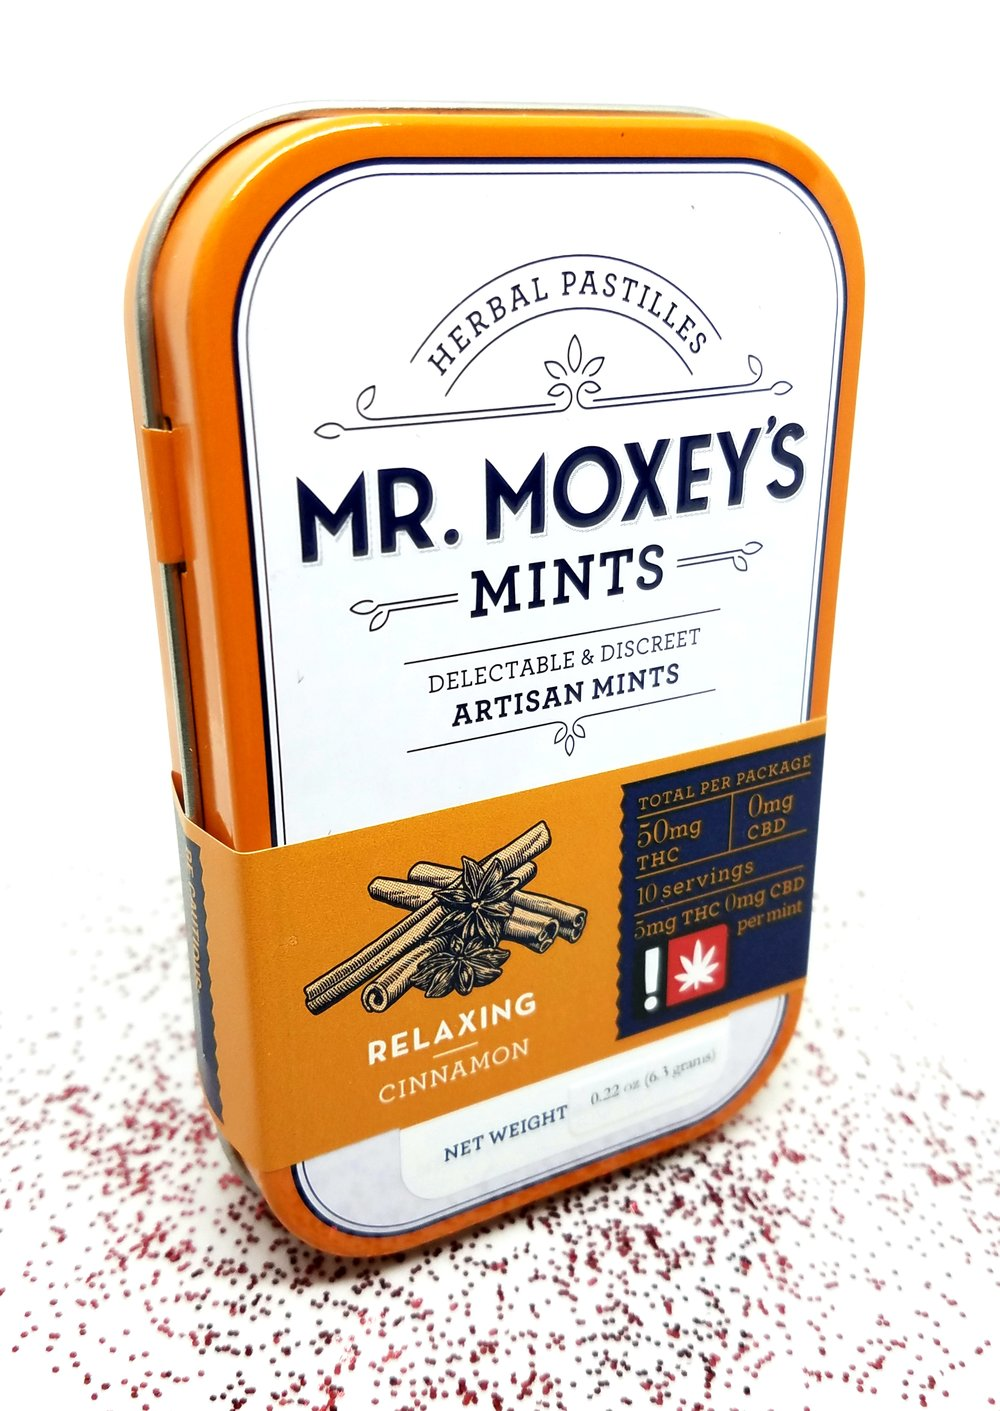 Cinnamon THC mints produced by Mr. Moxey's Mints